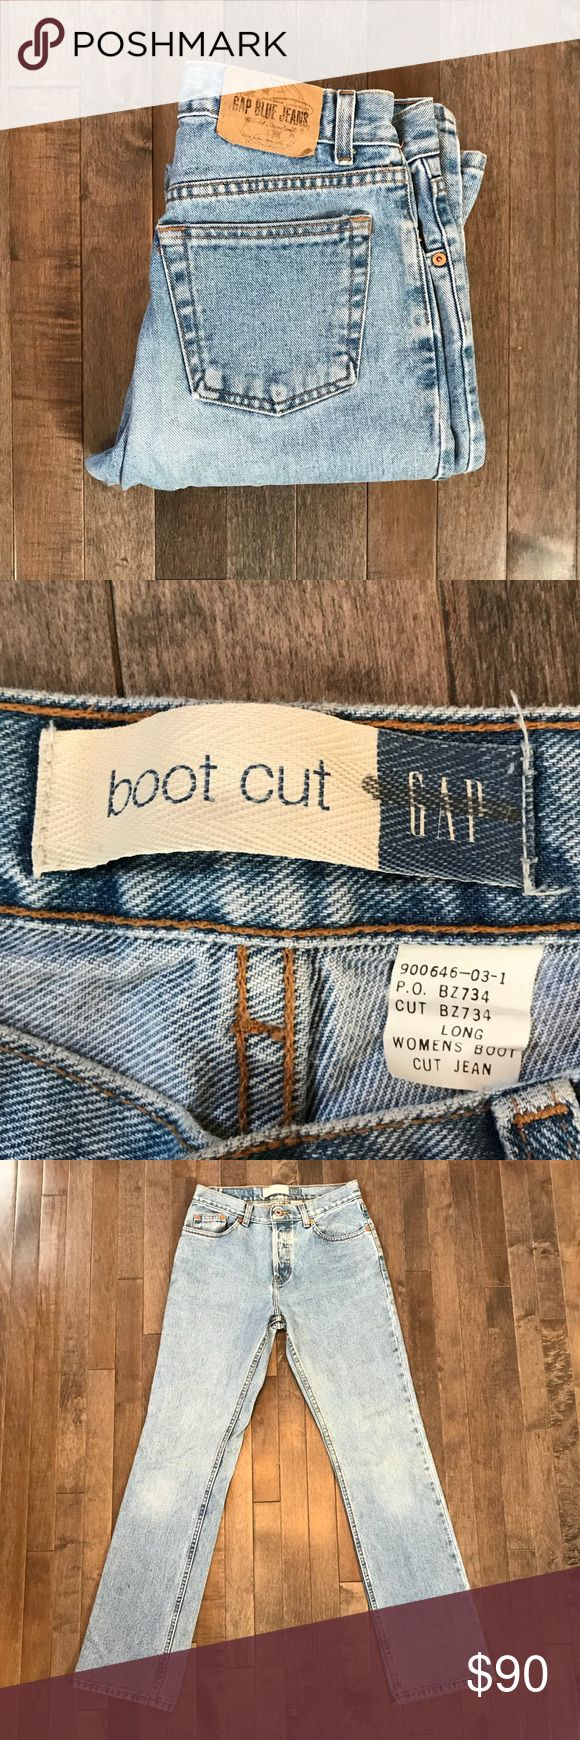 """Vintage GAP mid rise, button fly, jeans!! Cool vintage GAP jeans!! Features a button fly, mid rise, boot cut, light wash, and denim is 💯 cotton made in the USA!! Size listed based on waist measurement. Has a 29"""" waist best fit for a modern jean size 27-29 depending on desired fit.  - review photos carefully  - ask questions prior to purchasing  - no trades  - I do not model  - all sales are final GAP Jeans Boot Cut"""